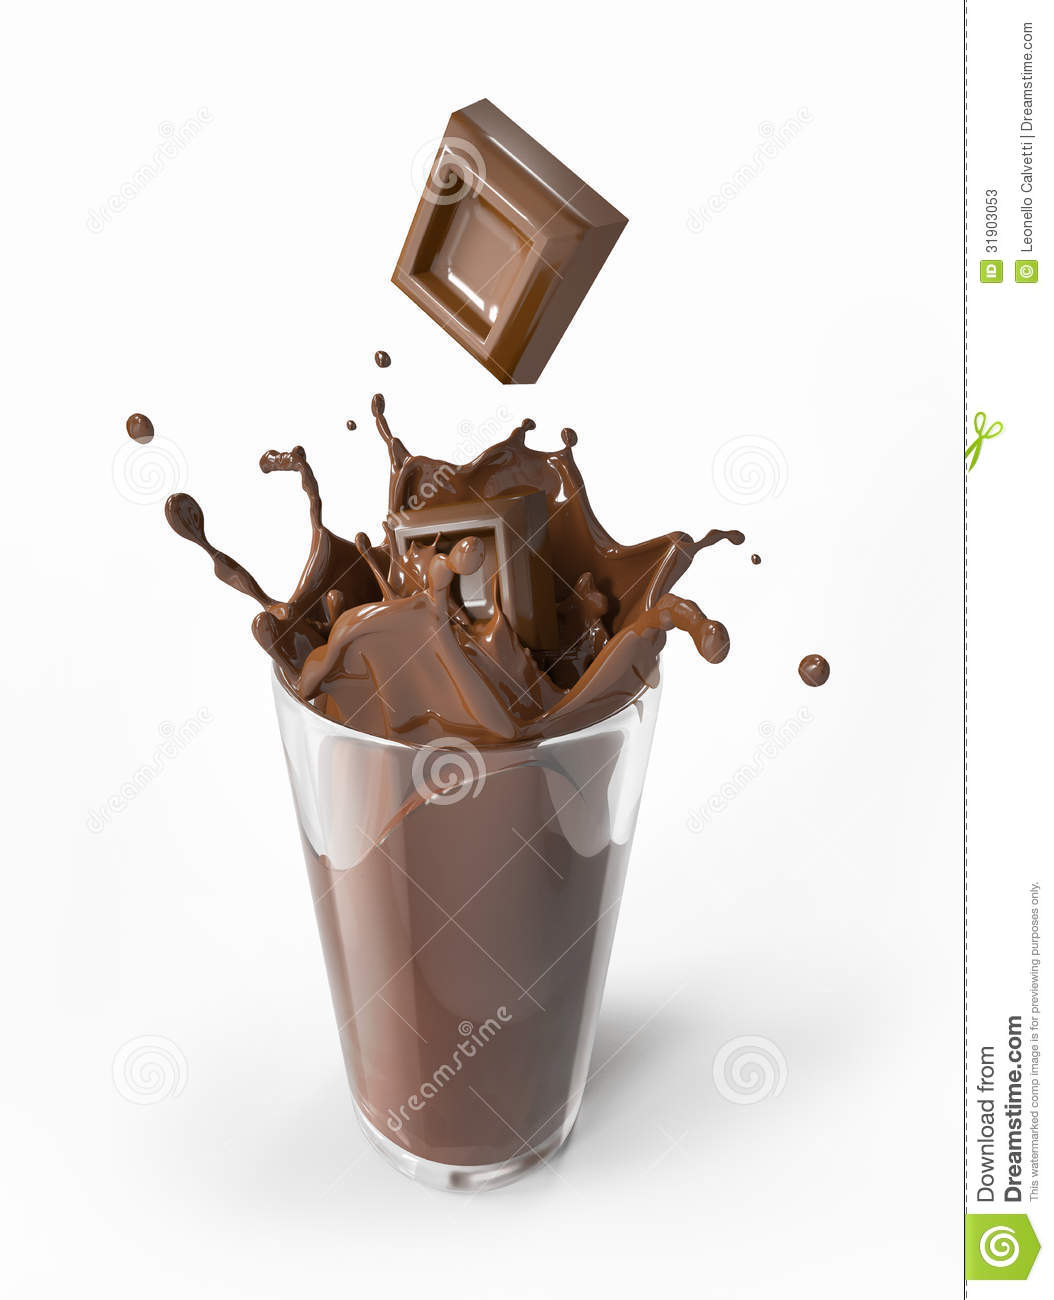 Chocolate Blocks Falling Into A Glass Splashing. Stock Photos - Image ...